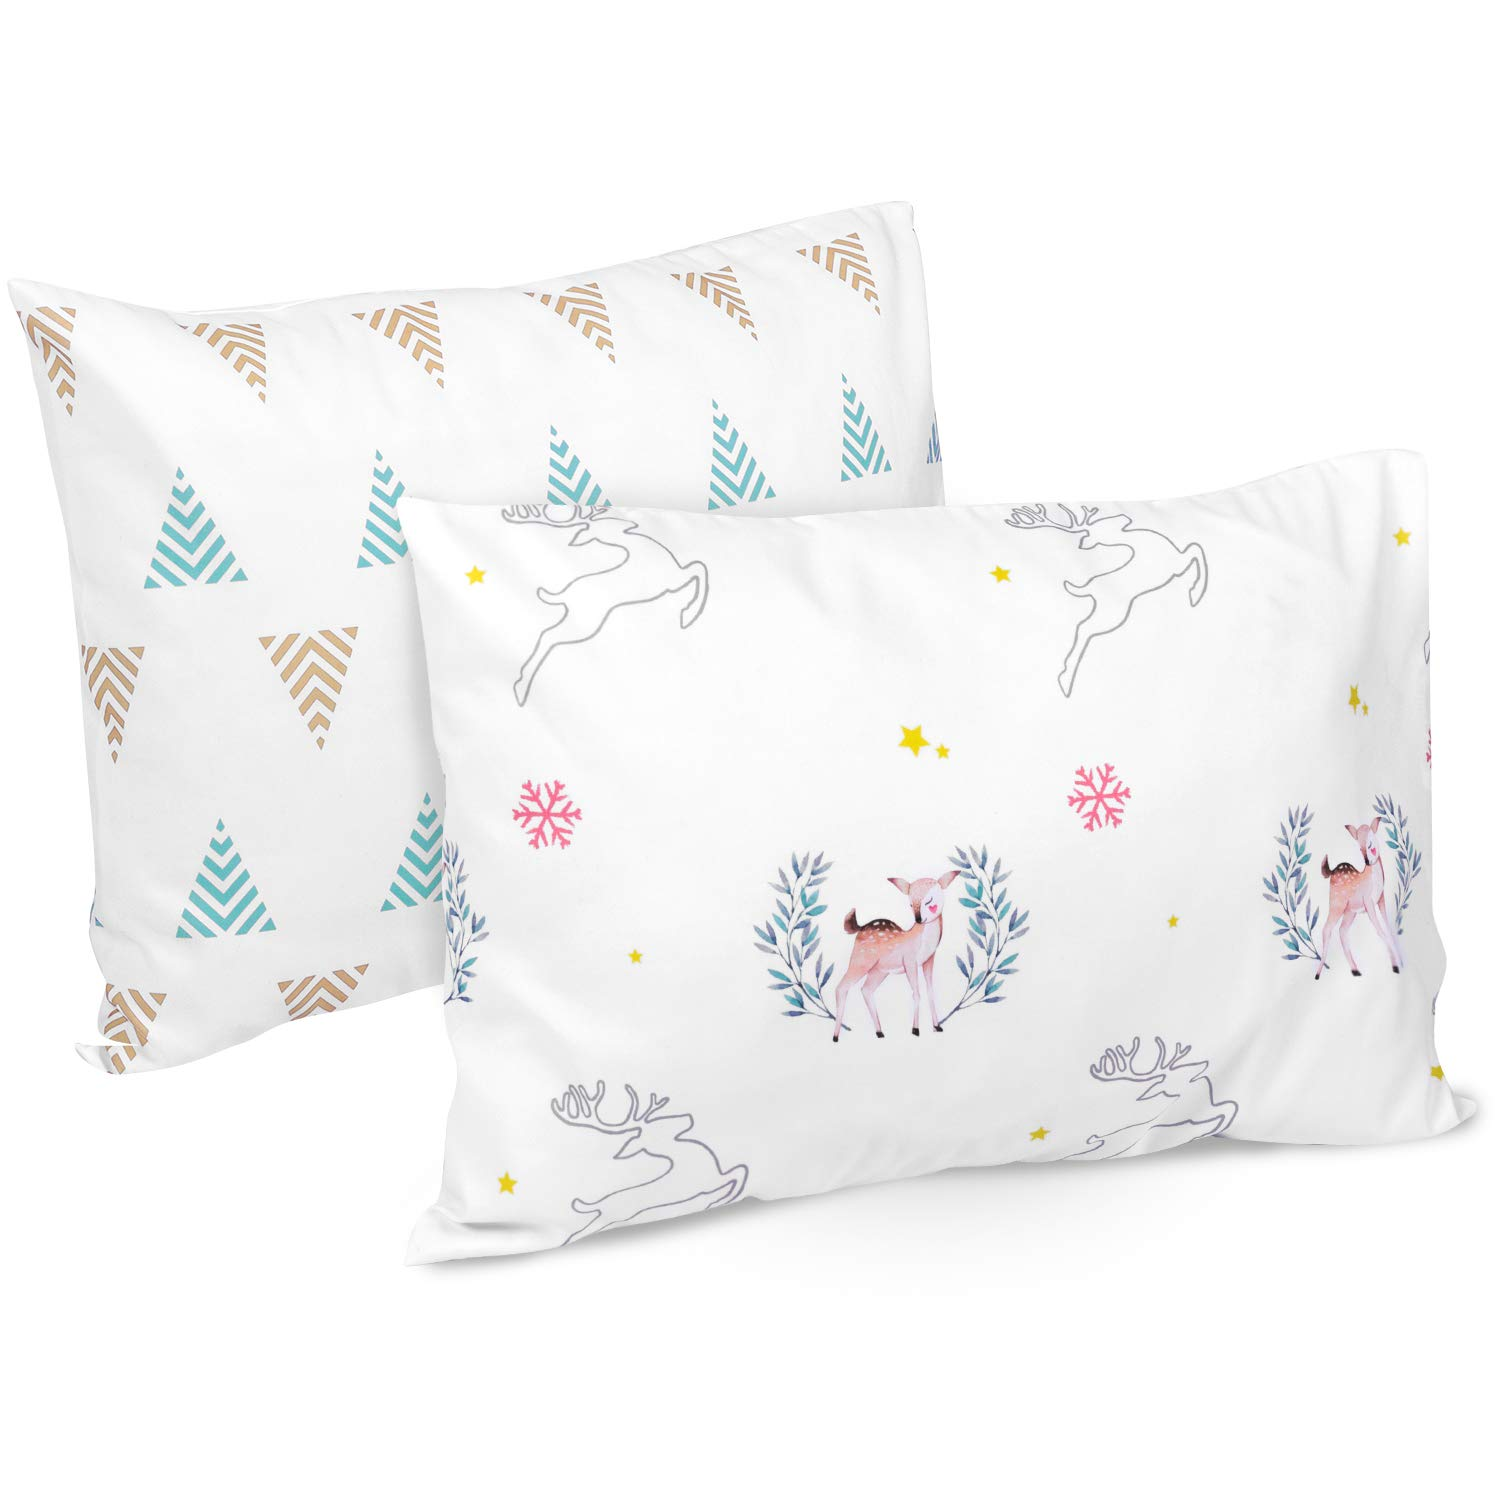 Blue Envelope Closure Machine Washable Kids Pillow Cases TILLYOU Toddler Travel Pillowcases Set of 2 14x20- Fits Pillows Sized 12x16 13x18 or 14x19 100/% Silky Soft Microfiber